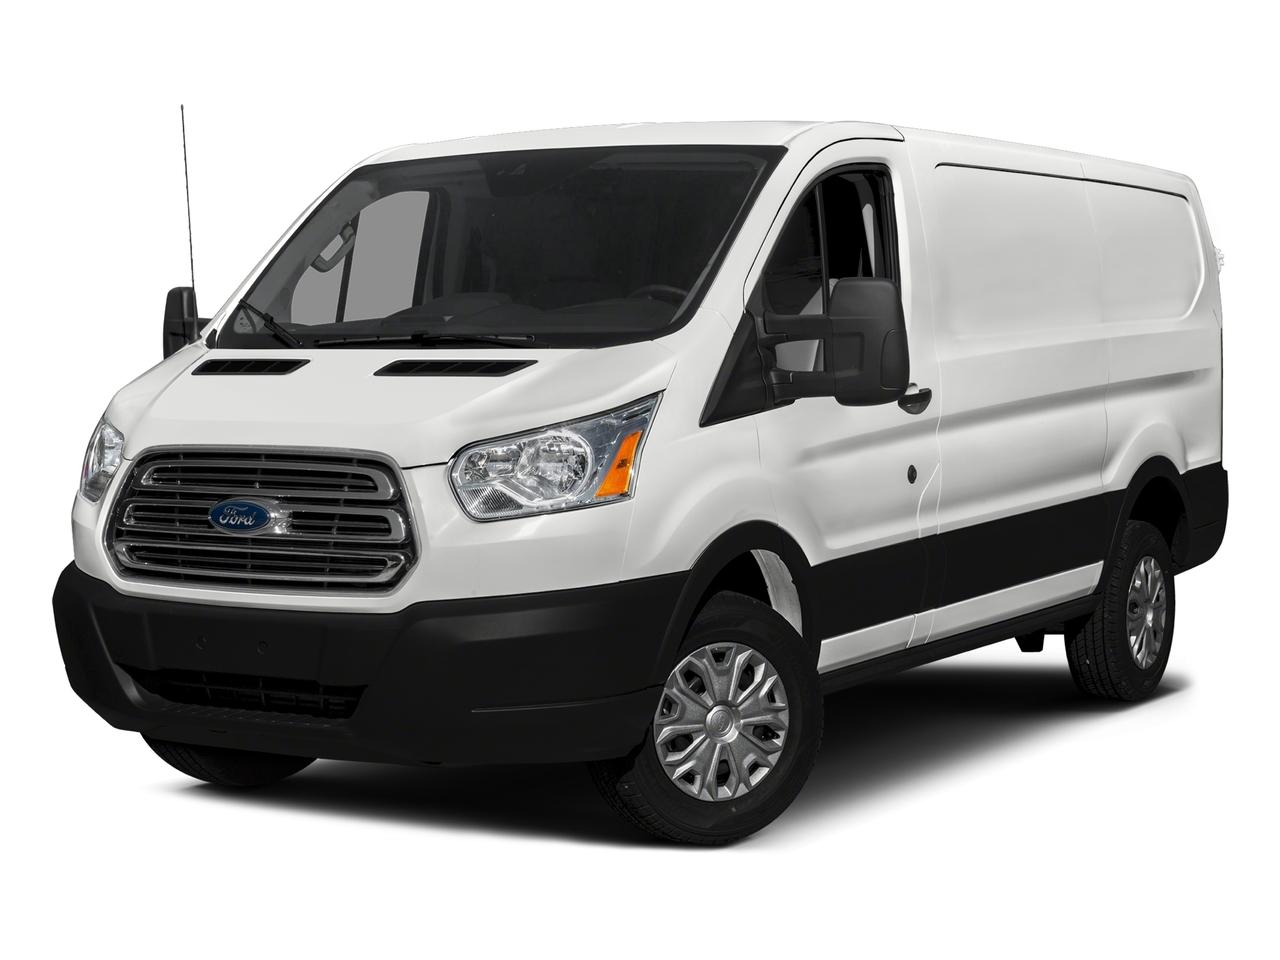 2016 Ford Transit Cargo Van Vehicle Photo in Hudson, MA 01749